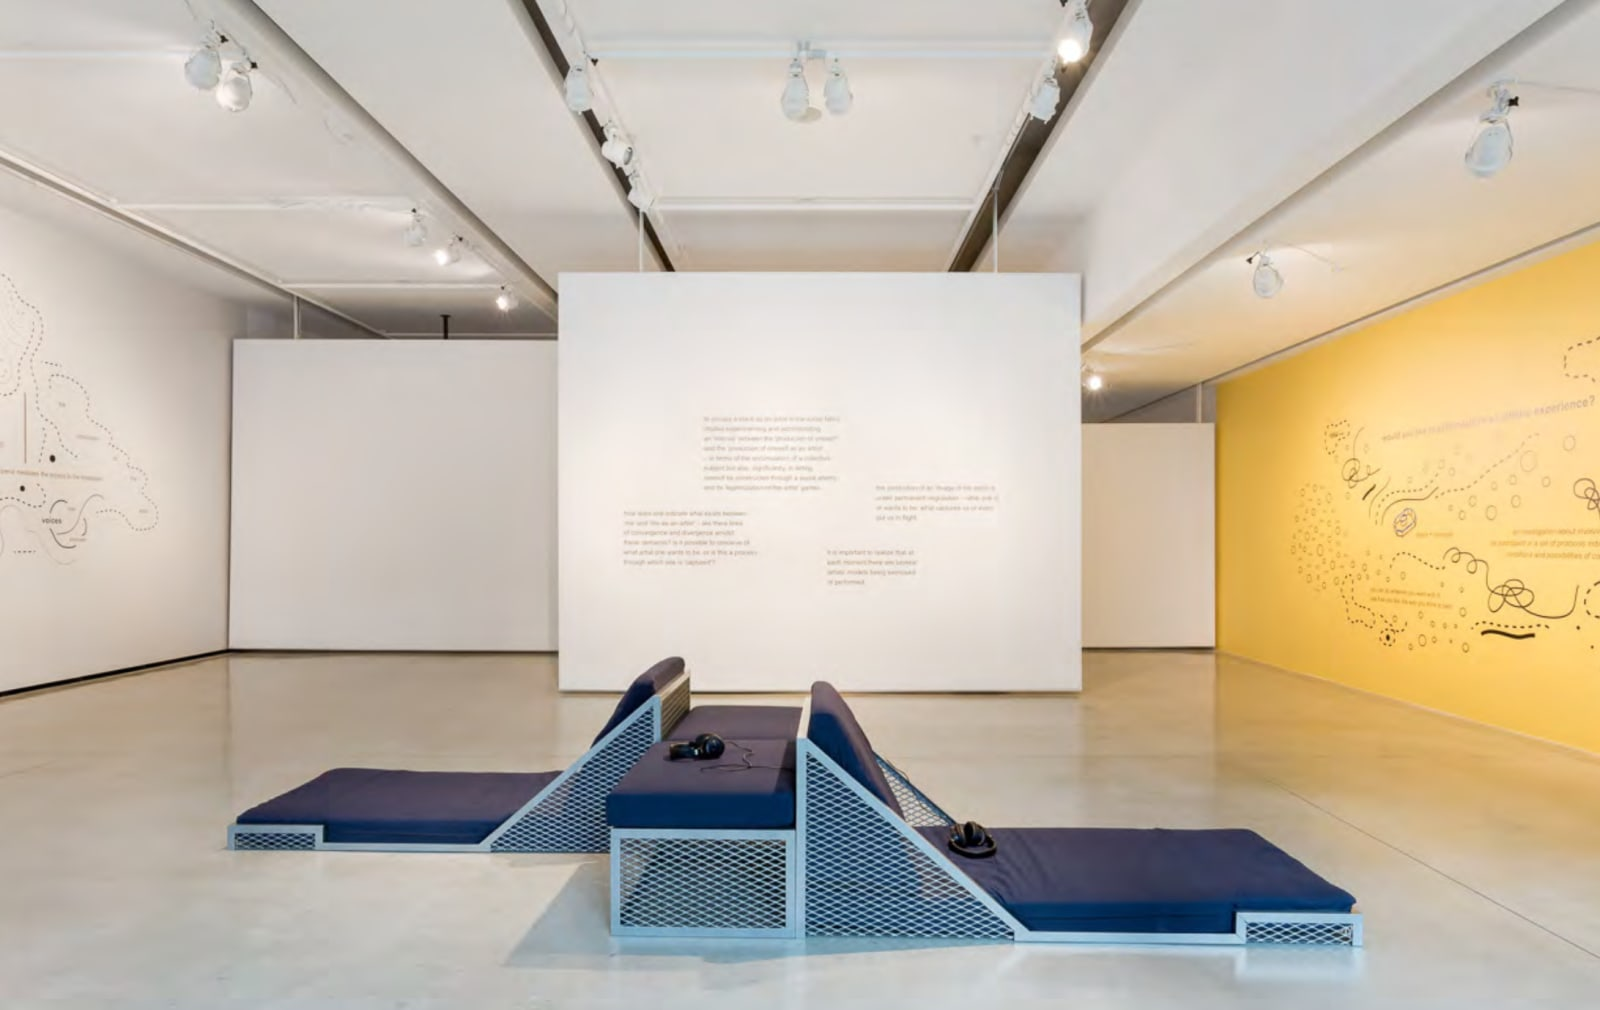 Ricardo Basbaum, The production of the artist as a collective conversation, 2014 On view at Audain Gallery, Vancouver, 2014